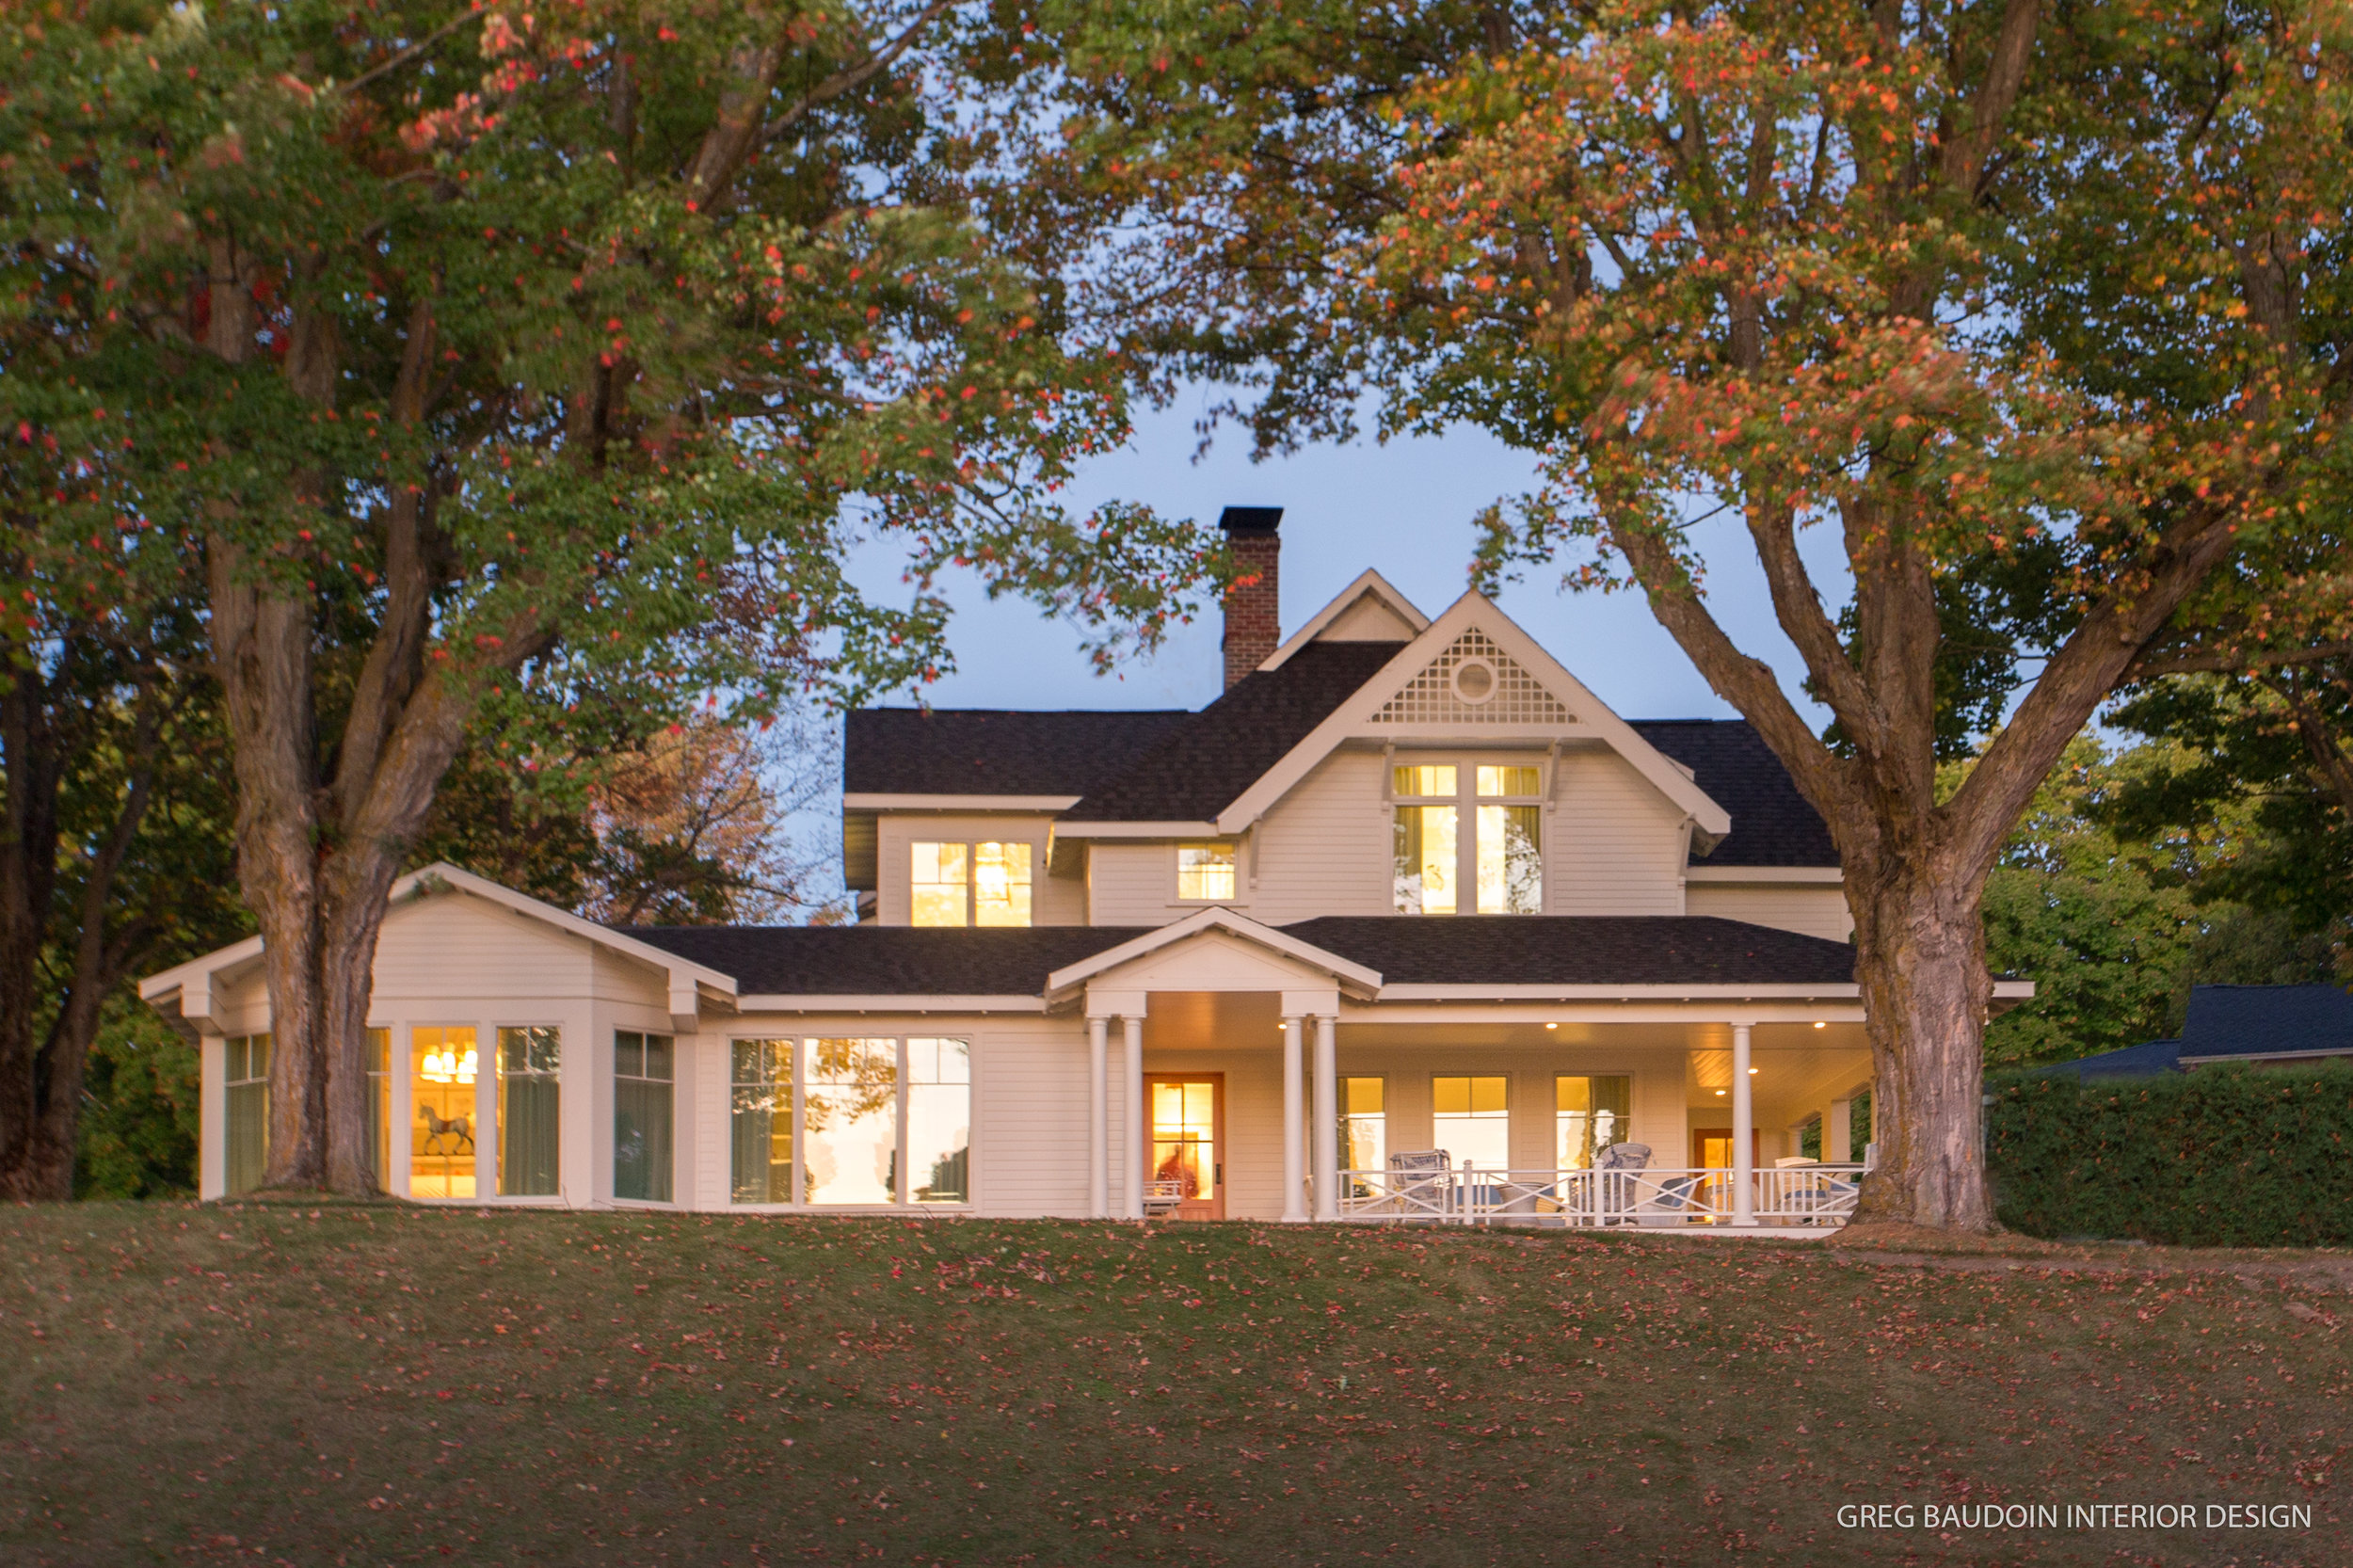 Charlevoix custom home and remodeling portfolio by builders and contractors, Birchwood Construction Company.